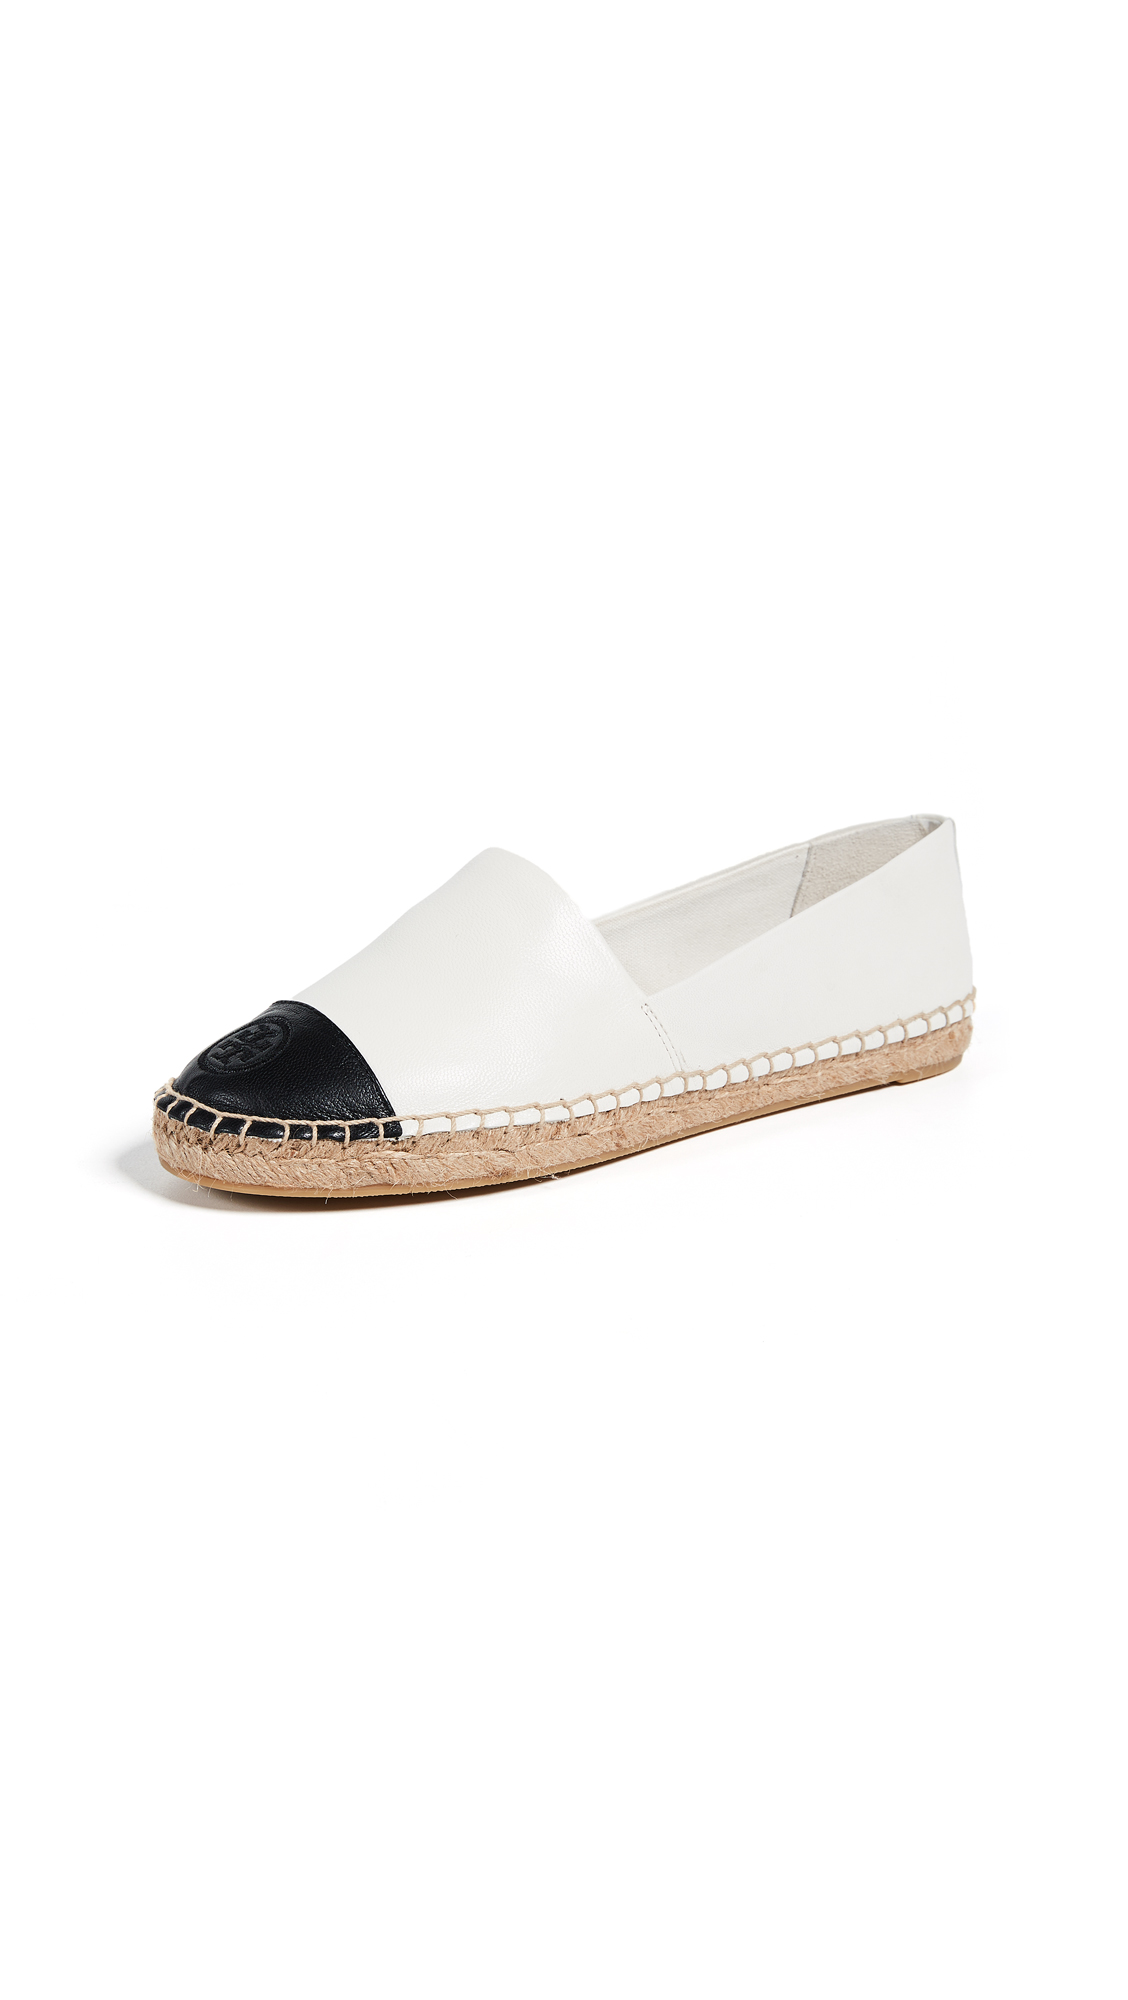 Tory Burch Colorblock Espadrilles - Ivory/Black